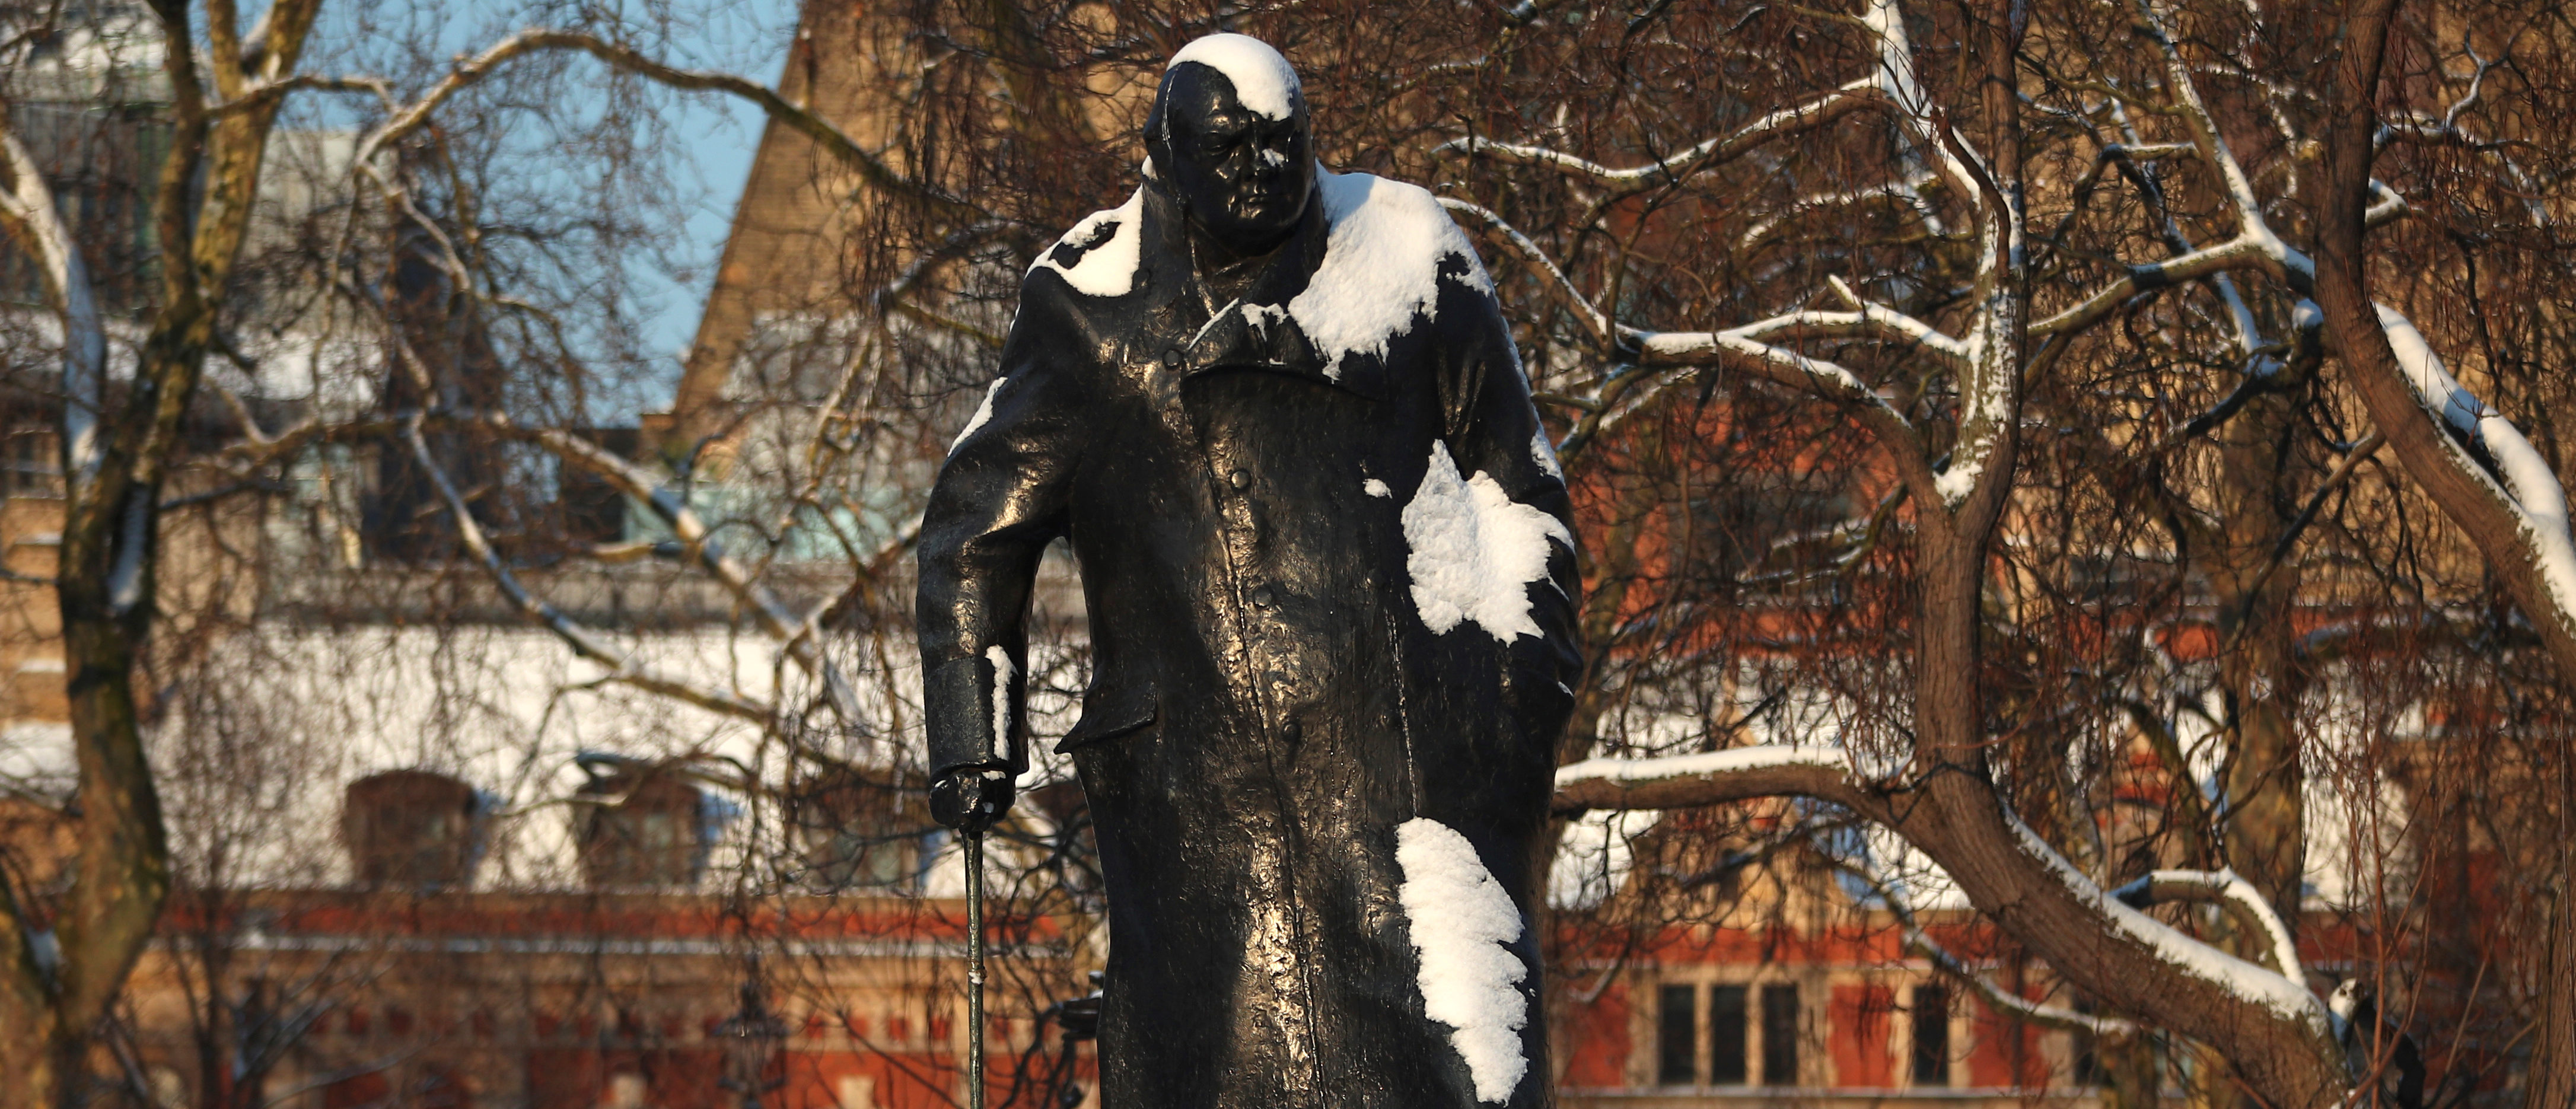 Winston Churchill's statue is dusted with snow in London, Britain, February 28, 2018. REUTERS/Hannah Mckay - RC11715EF830